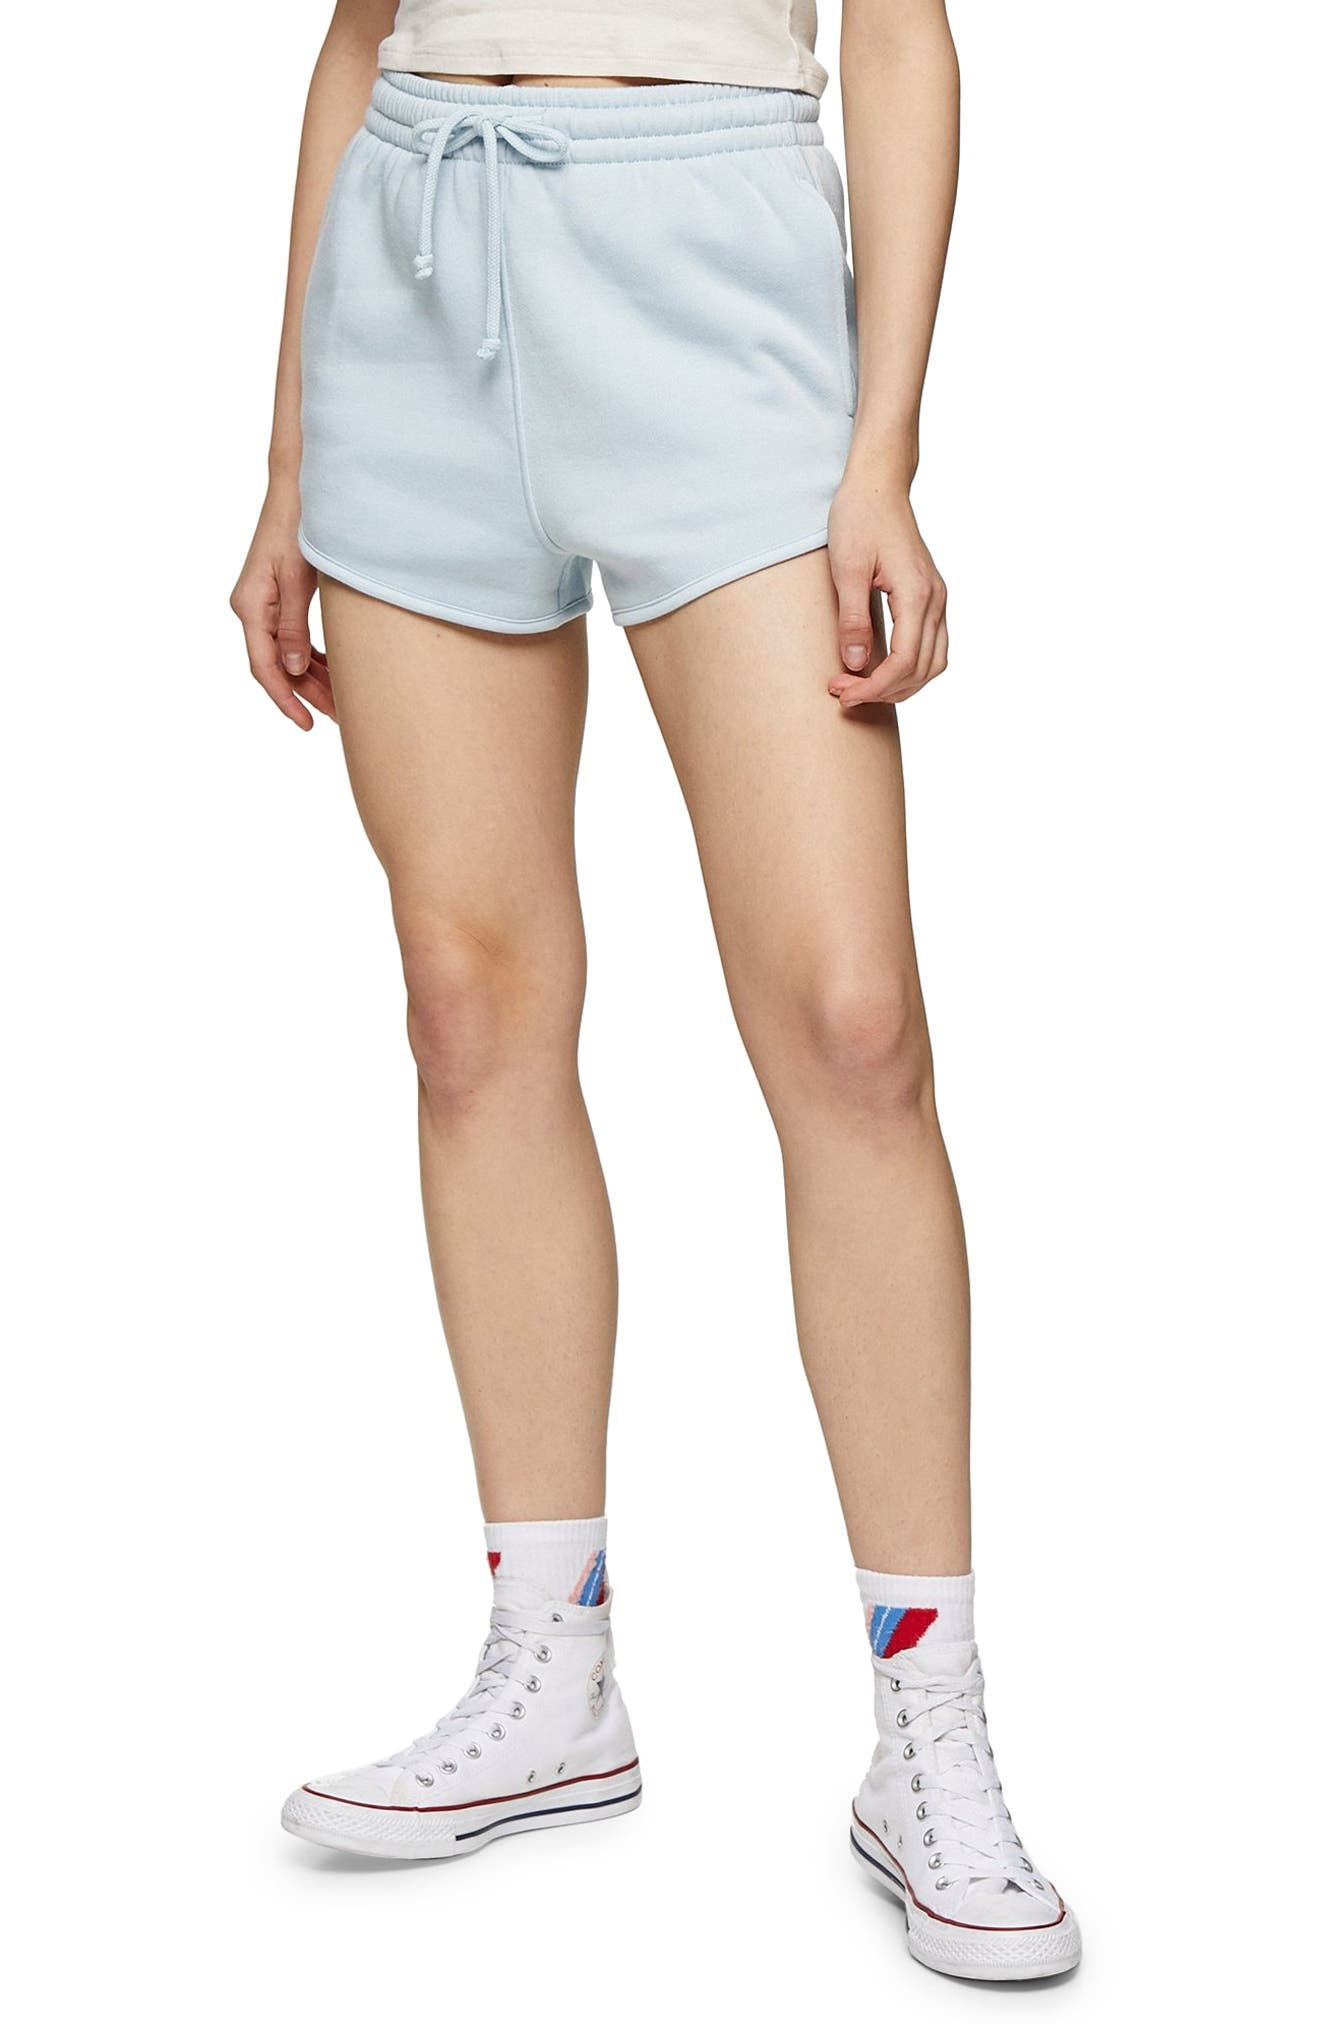 Women's Topshop '90S Runner Shorts,  6 US (fits like 2-4) - Blue